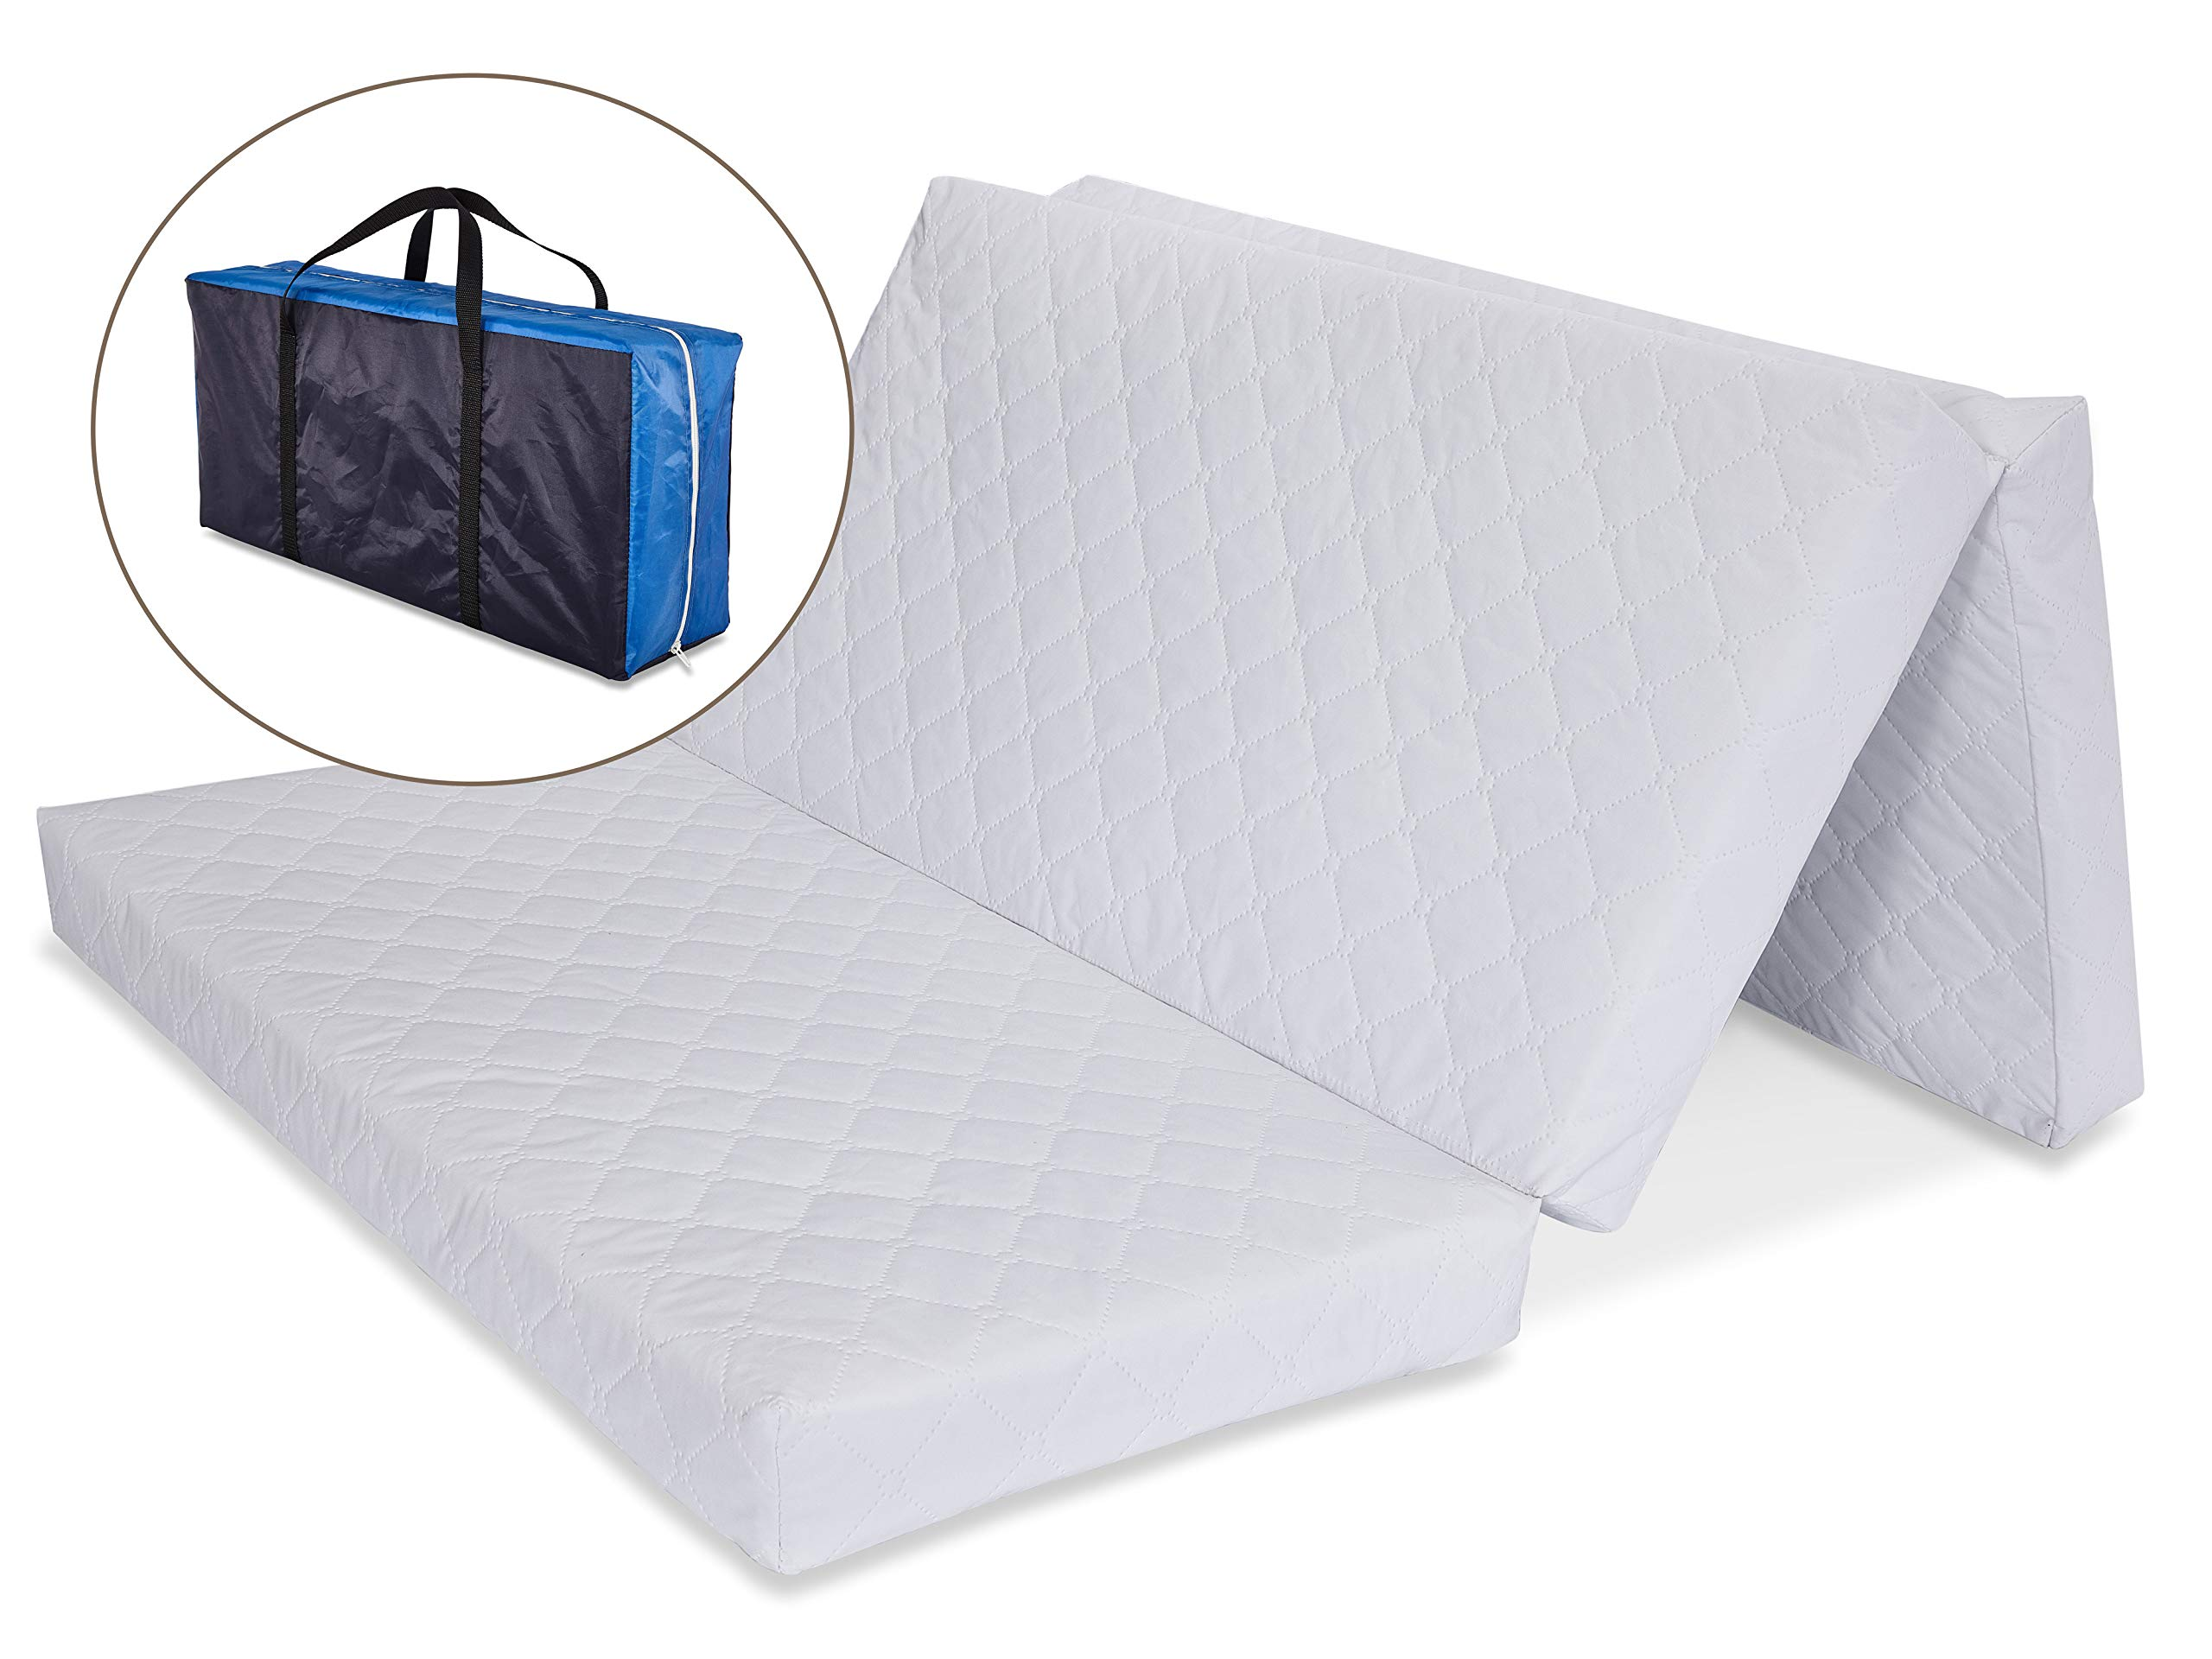 LA Baby Multi-Use Waterproof Folding Portable Crib Mattress/Play Mat with Travel Carry Case, 1.5'' - Easy to Clean, Hypo-Allergenic, Anti-Microbial & Non-Toxic Cover, 1.5'' by LA Baby